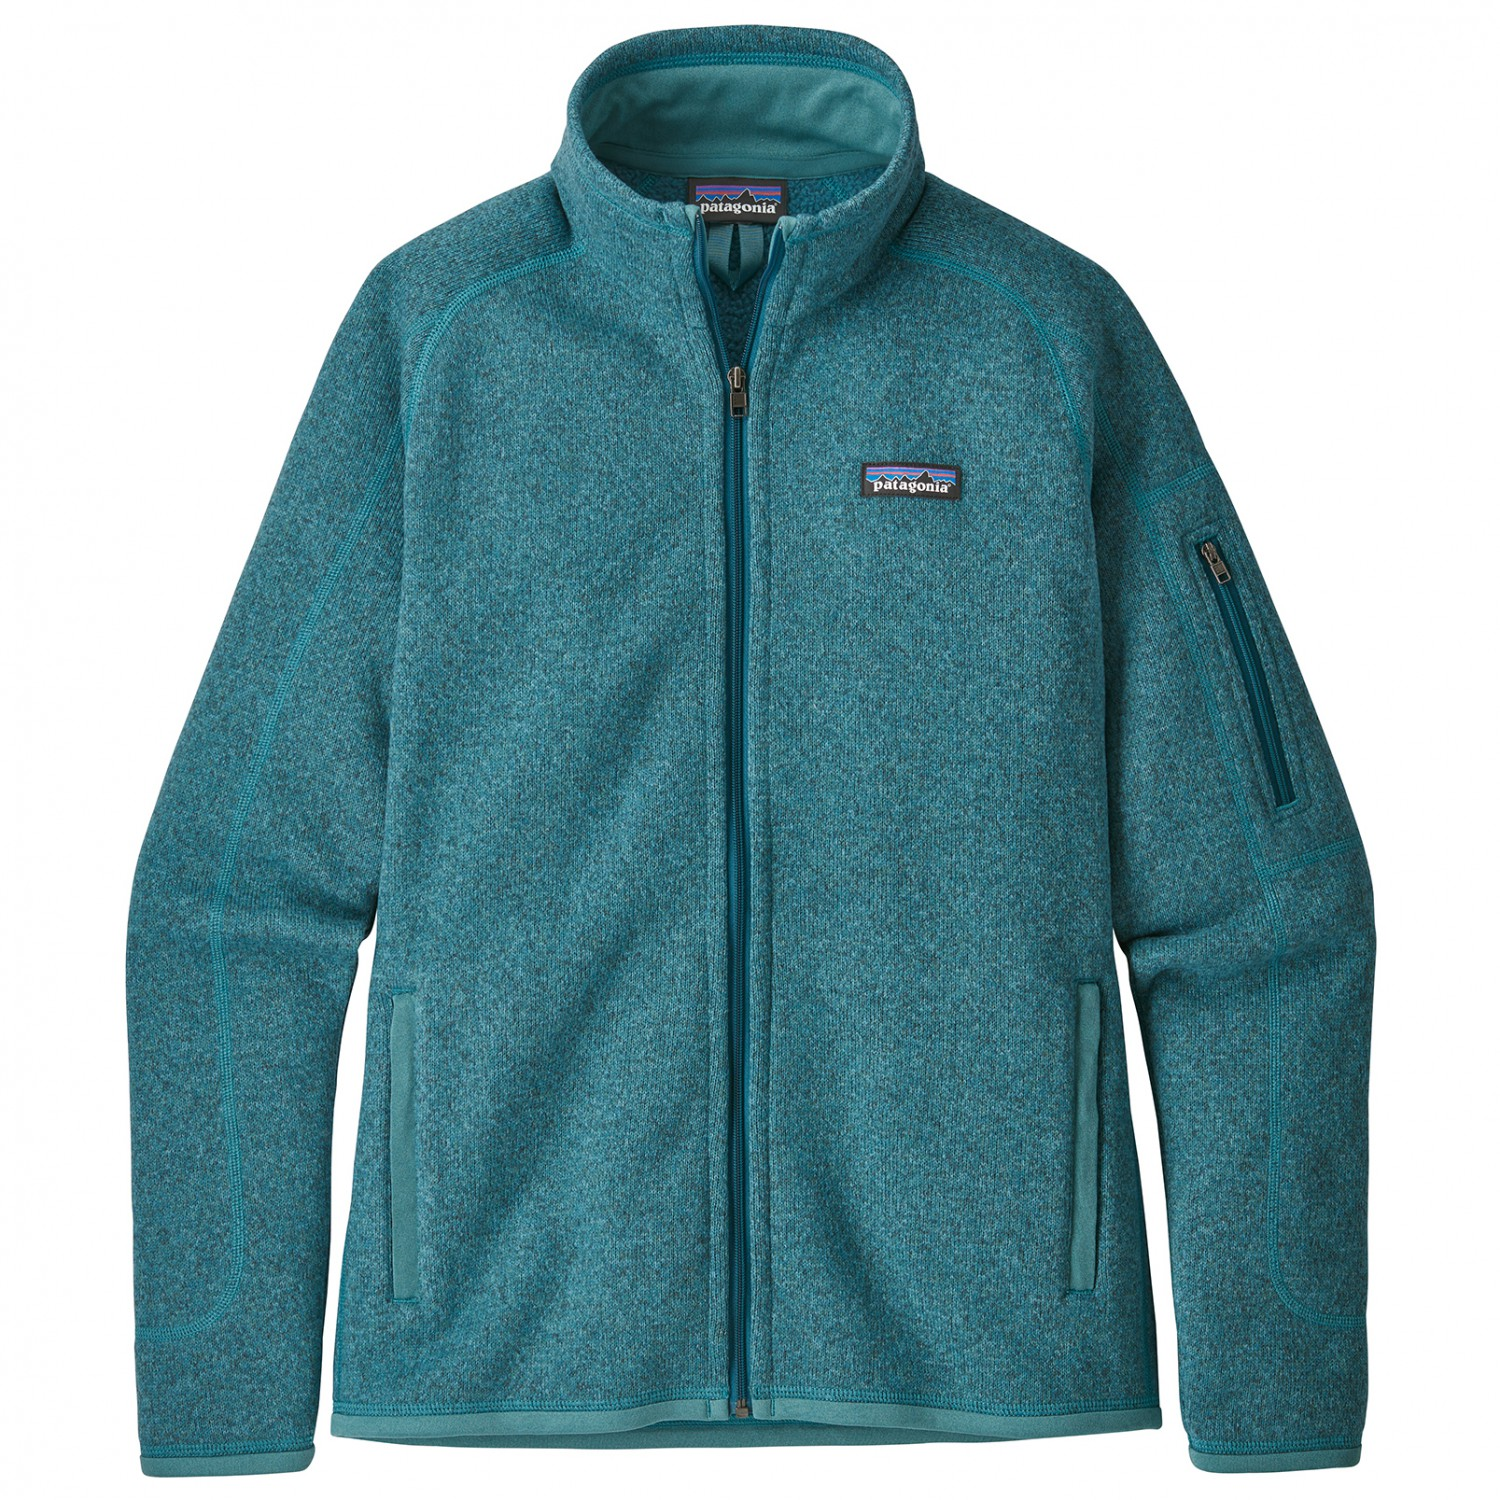 Giacca In Patagonia Sweater Better Jacket Porto Pile Donna Ctqft b4c371ab112c